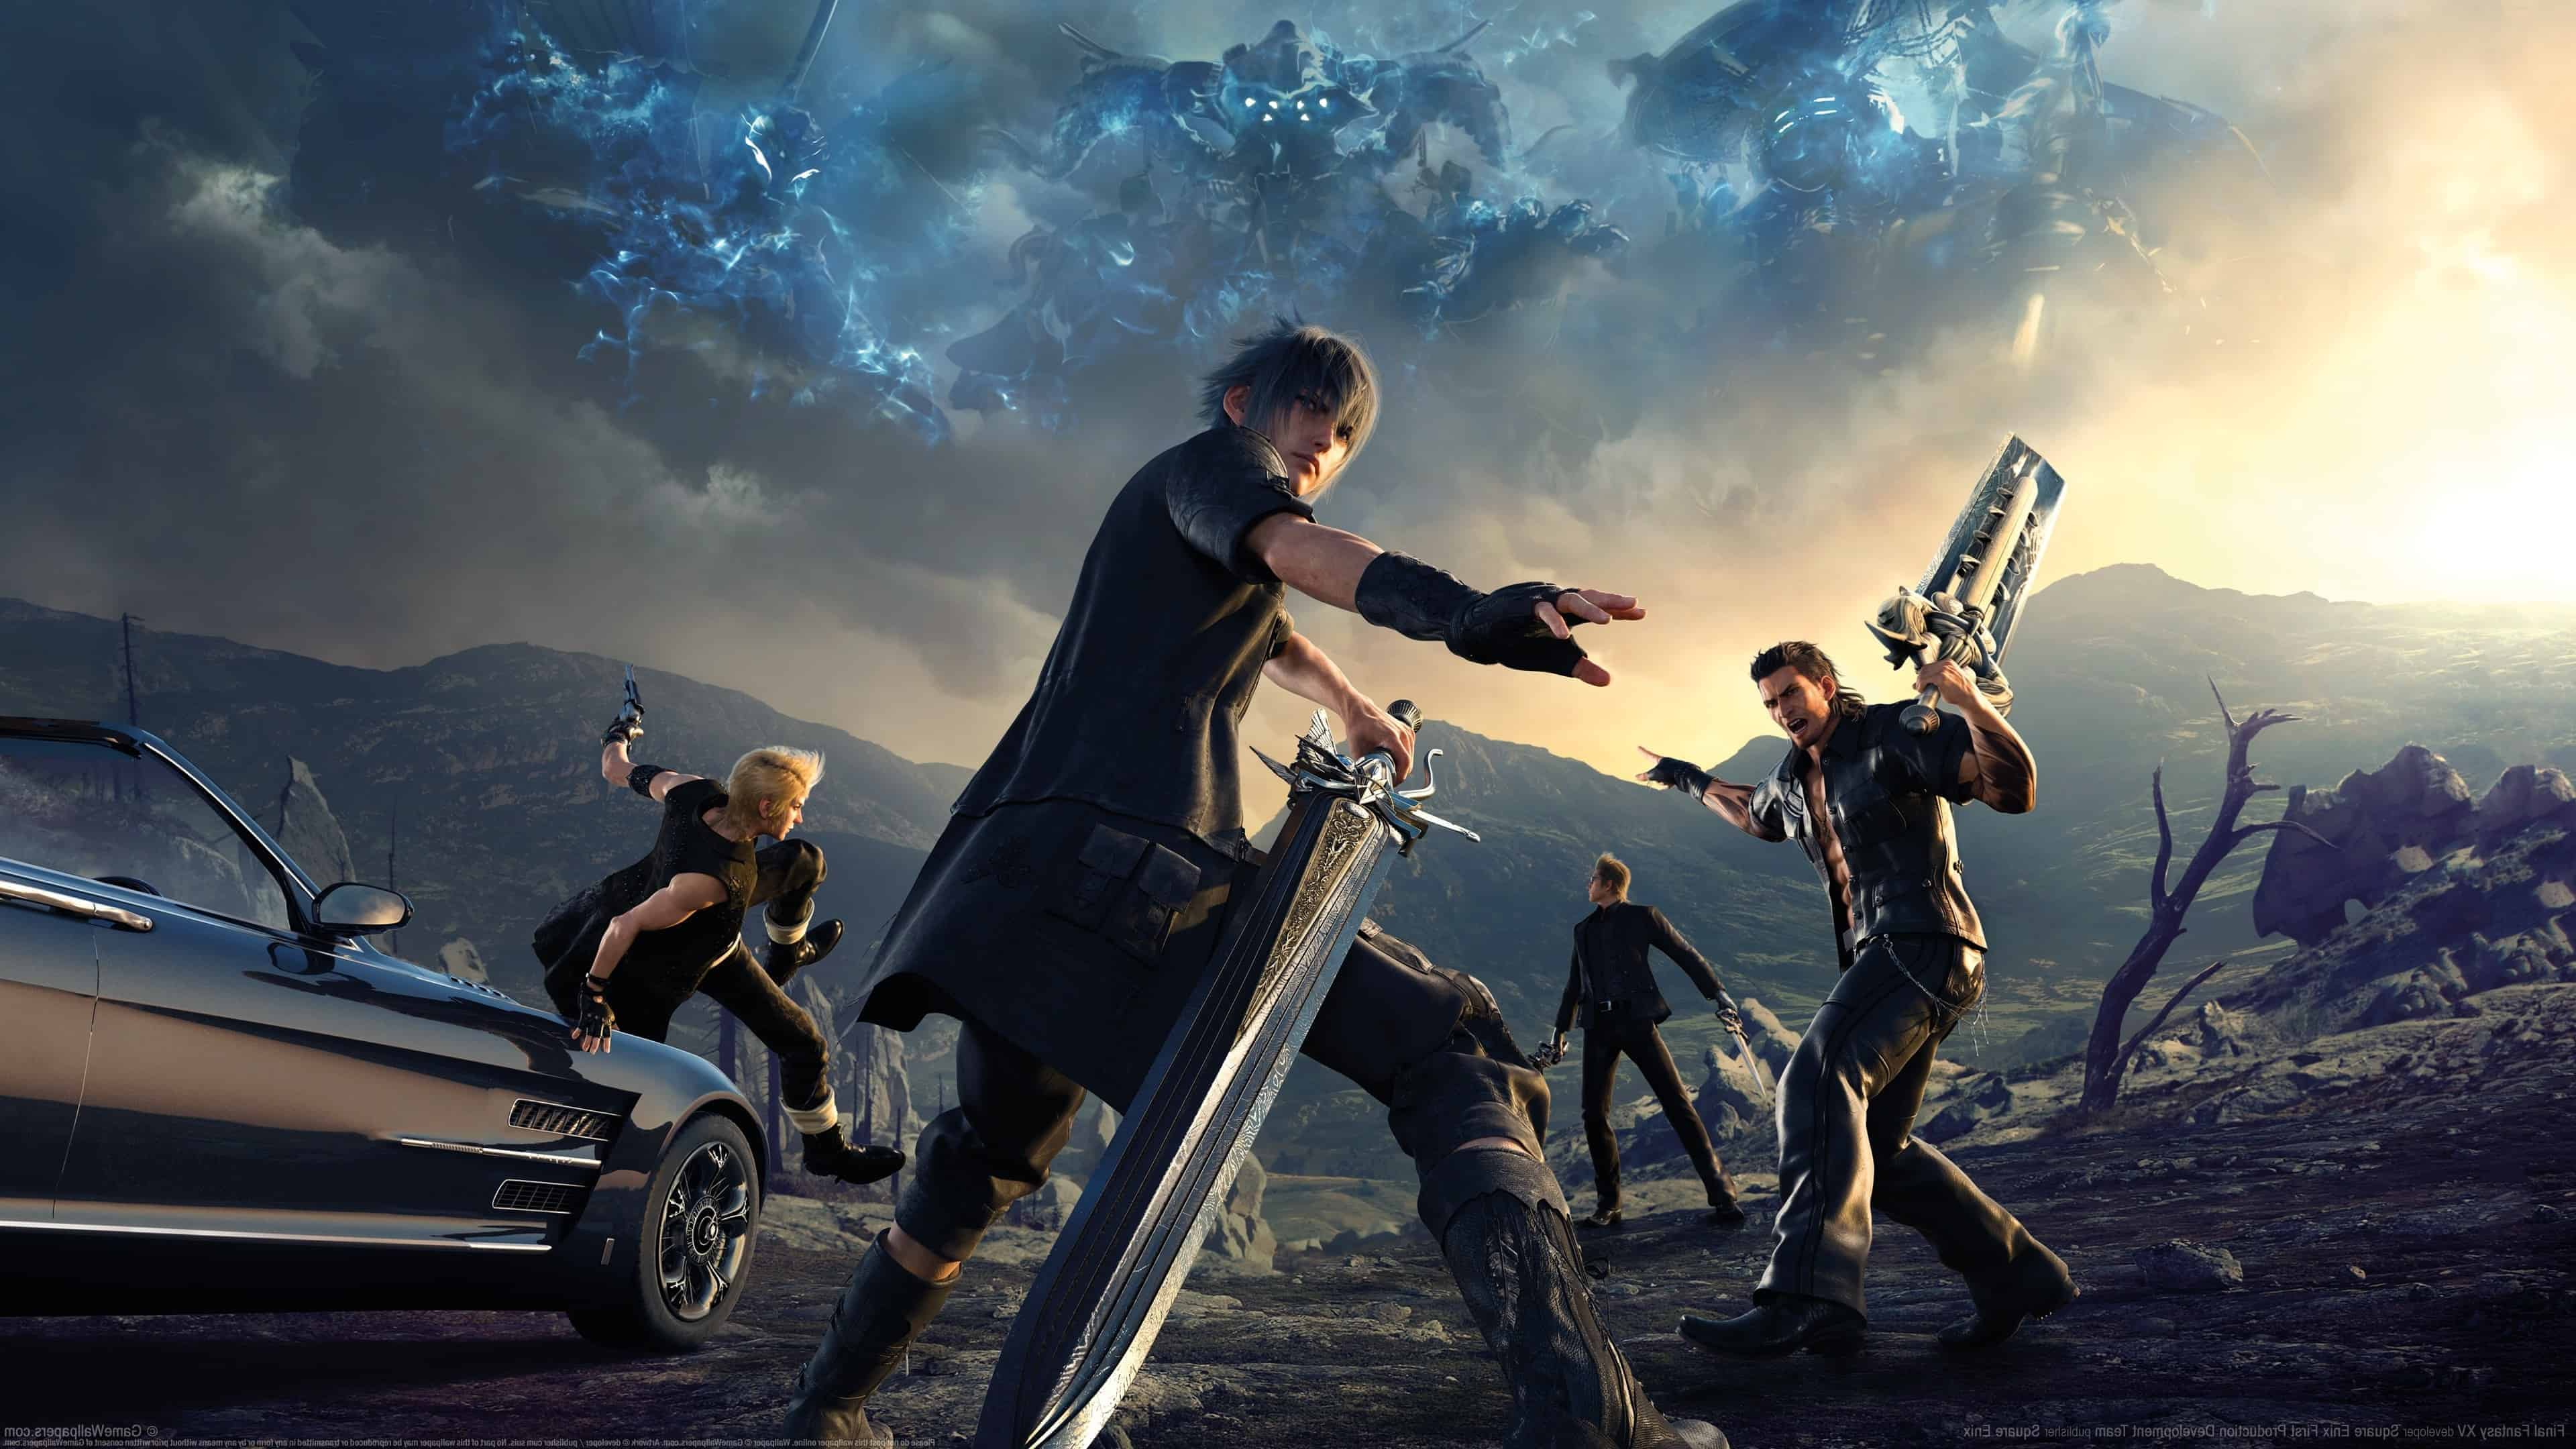 117 Final Fantasy Xv Hd Wallpapers: Final Fantasy 15 Wallpapers